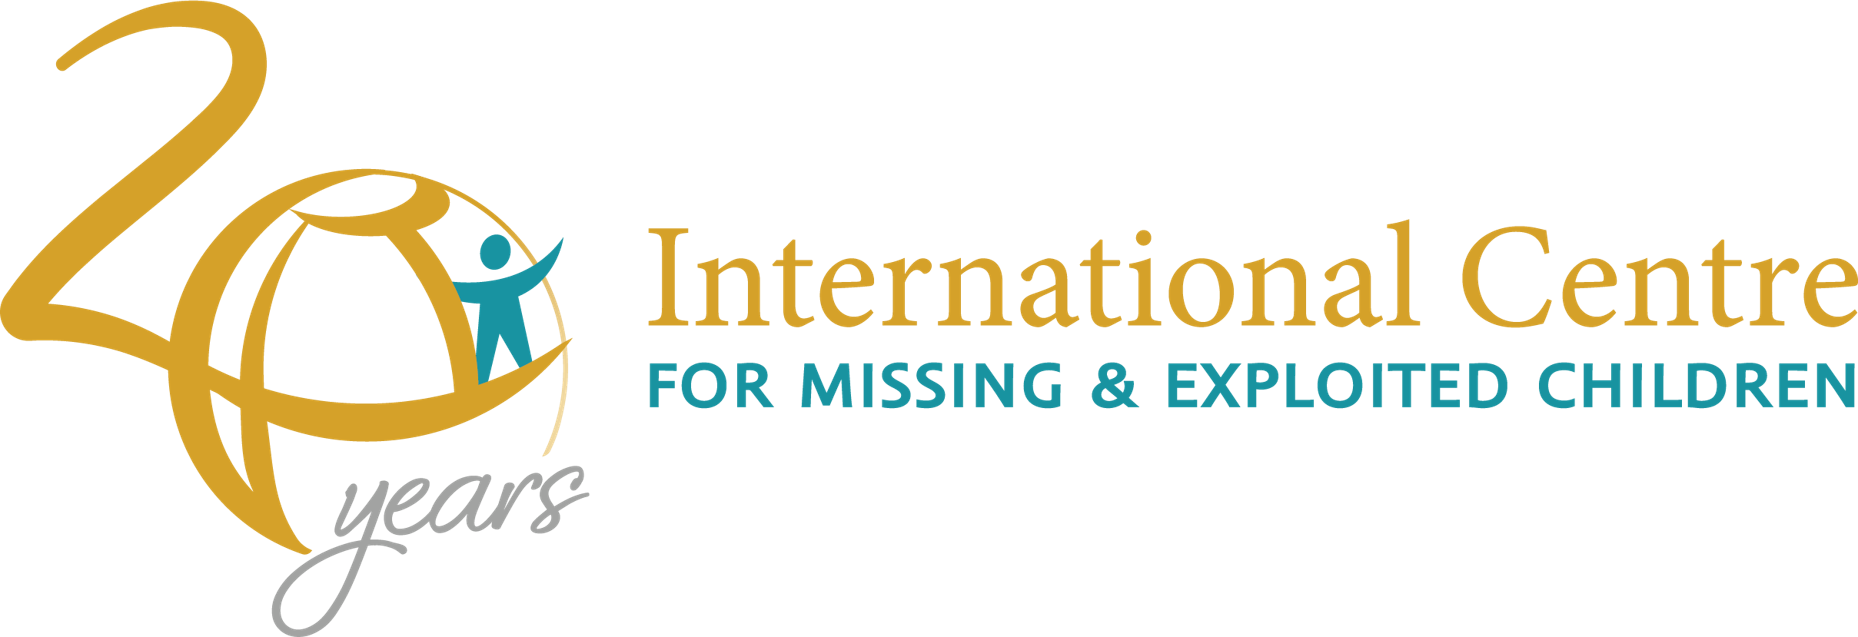 Child Protection Best Practices And Model Law International Centre For Missing Exploited Children